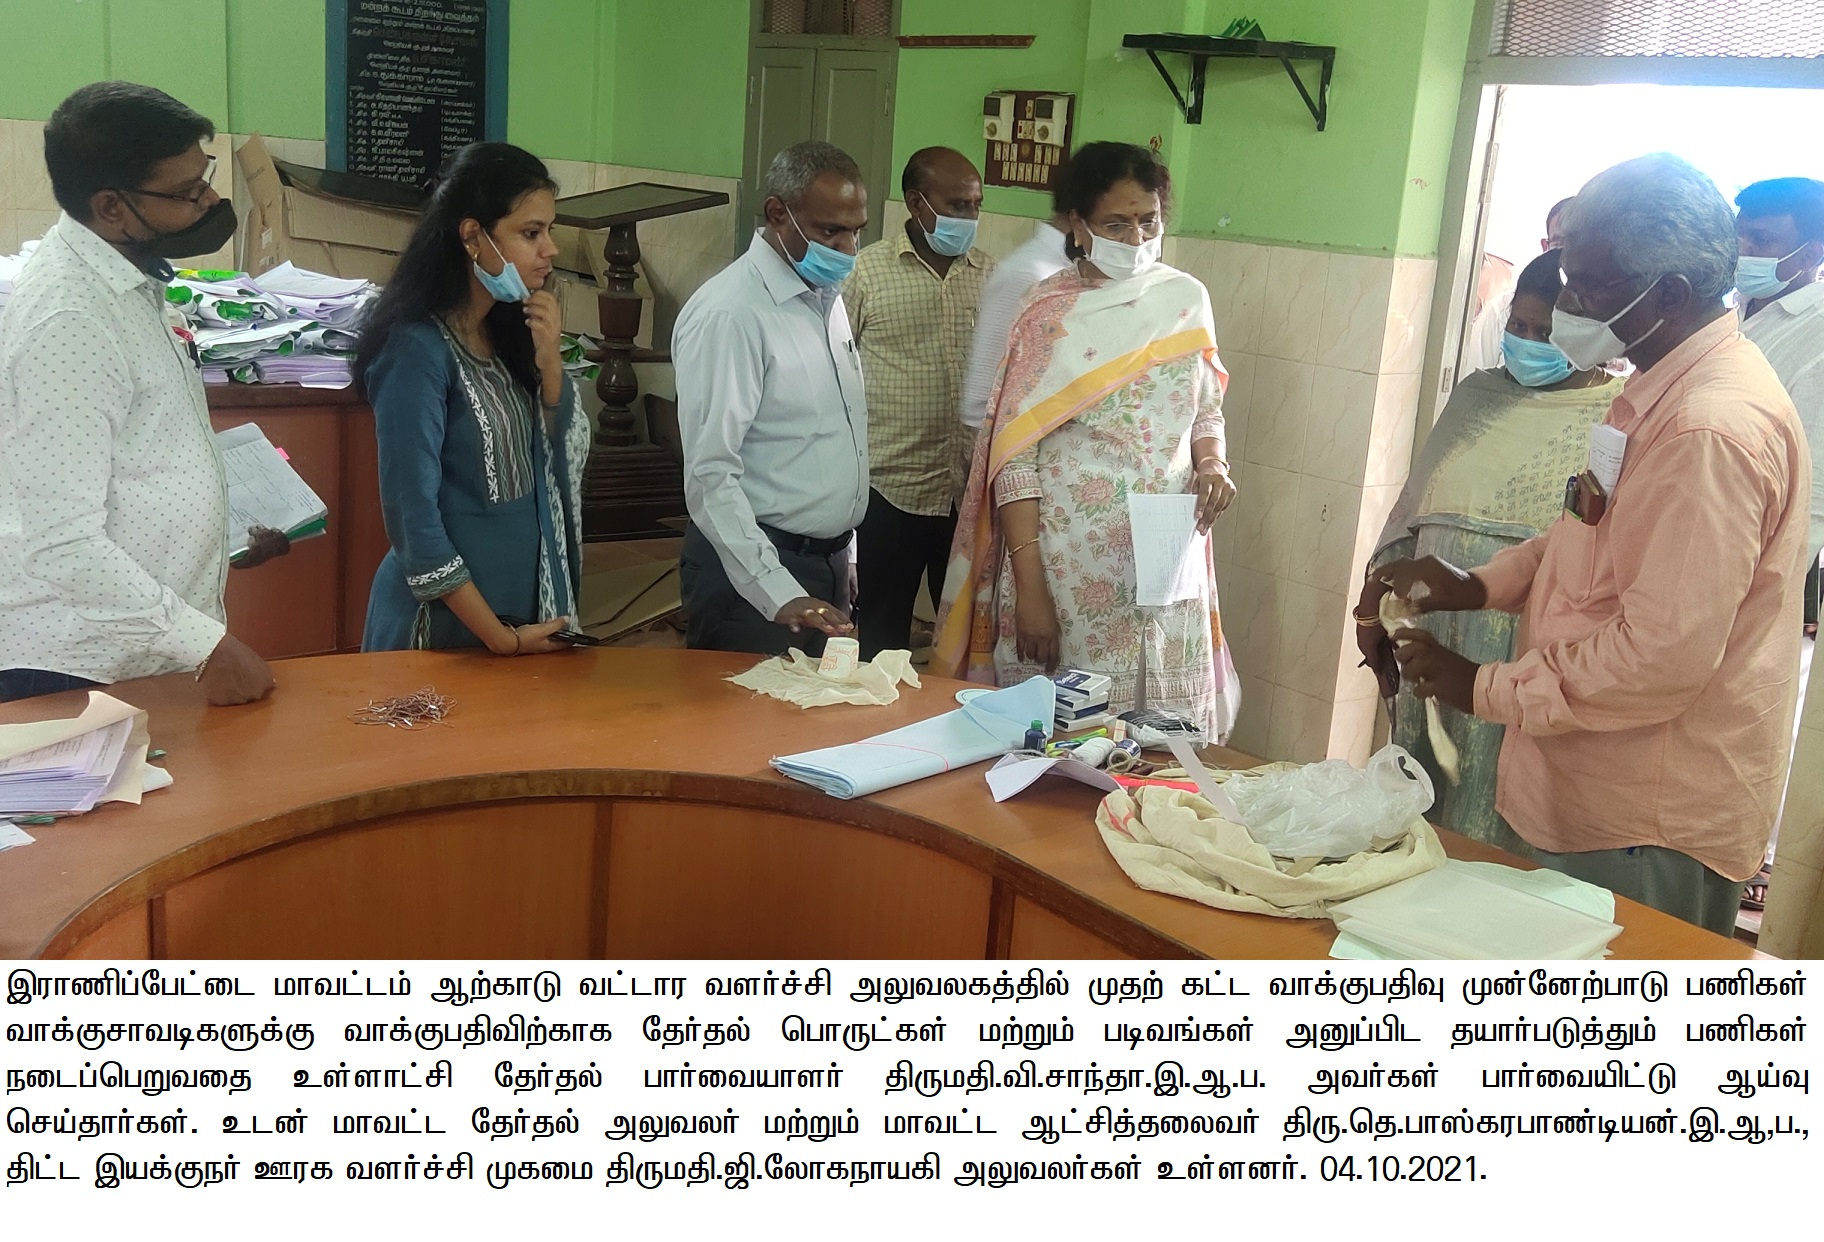 District Collector/District Election Officer visited and inspected local body elections materials 04/10/2021